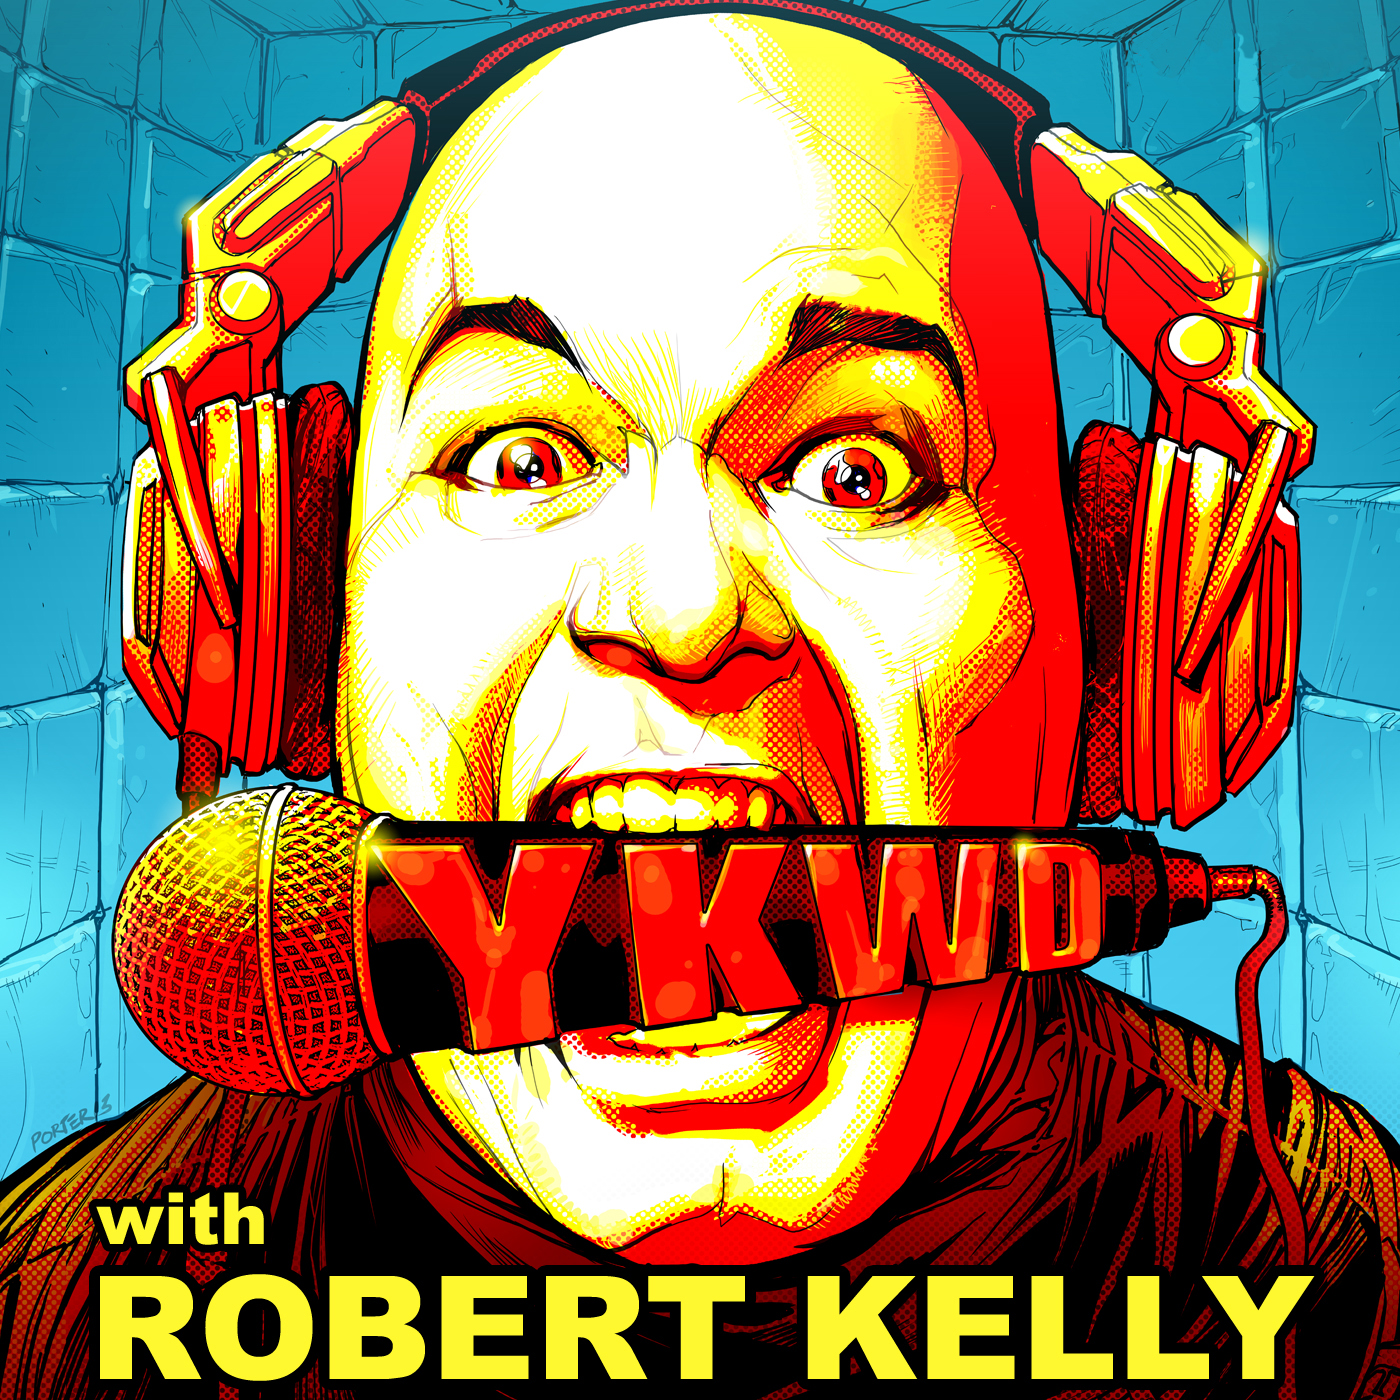 Artwork for VIDEO: YKWD Live at NYC Podfest